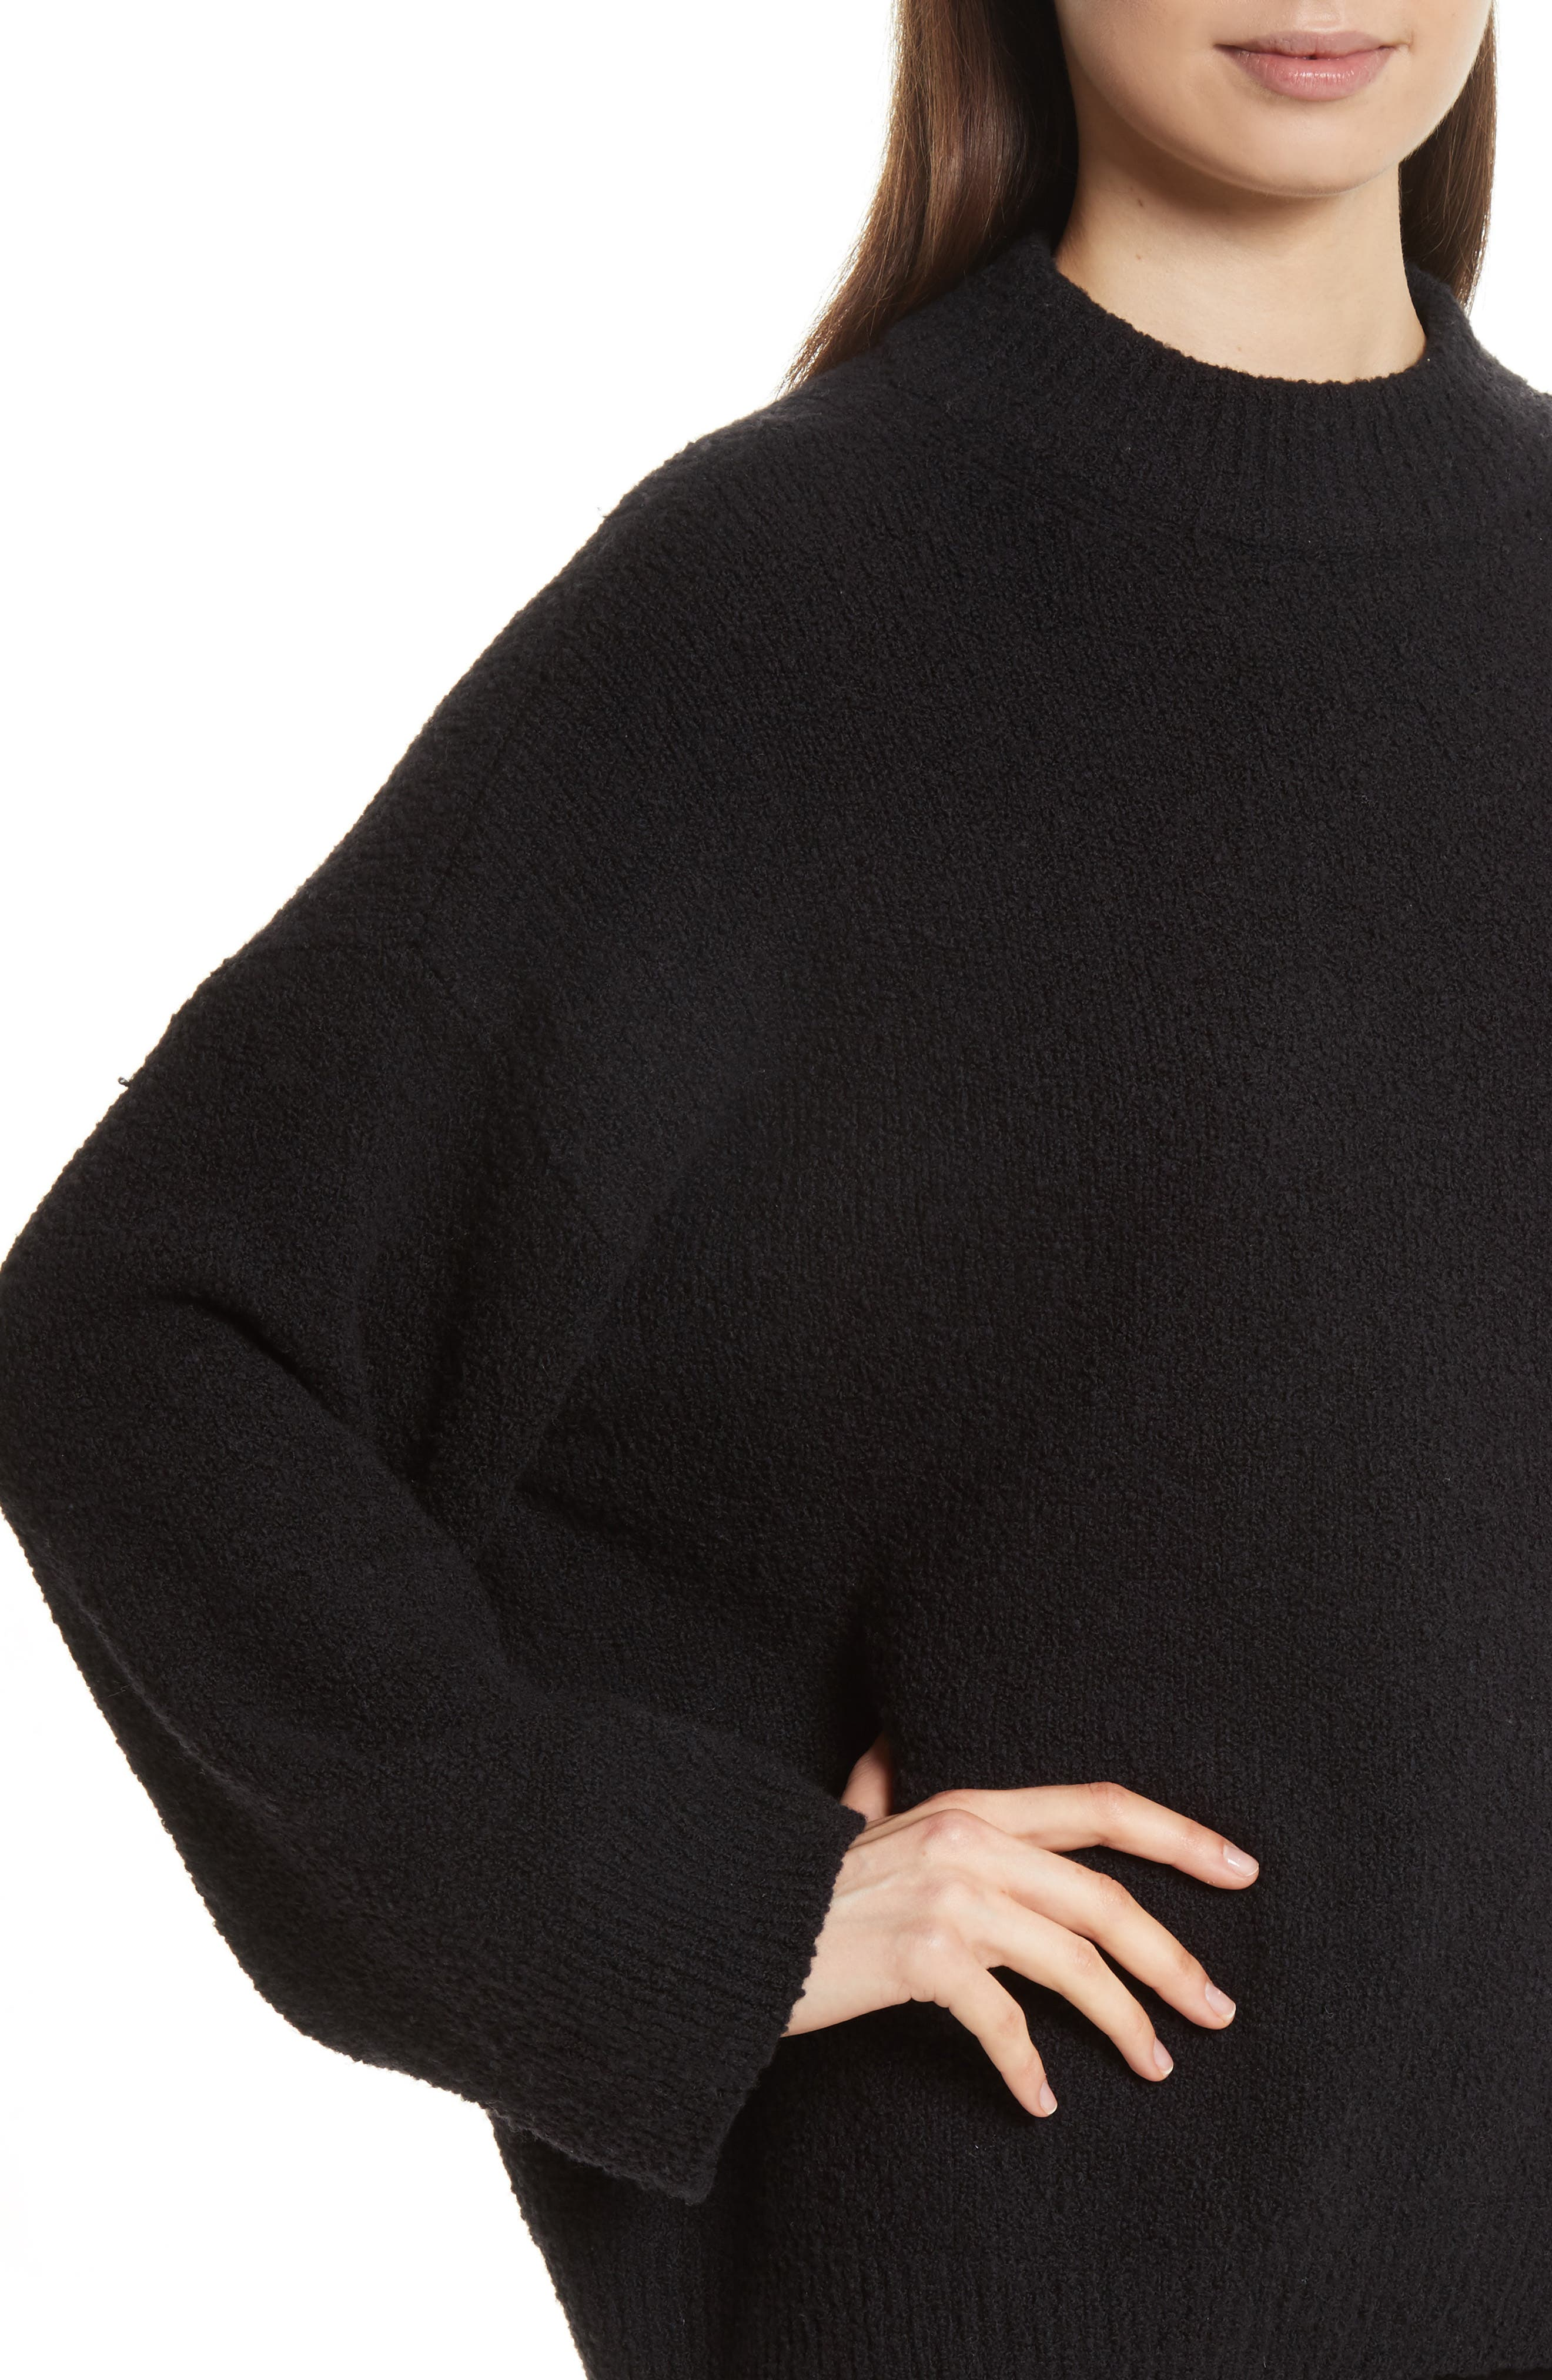 Boxy Knit Pullover,                             Alternate thumbnail 4, color,                             001